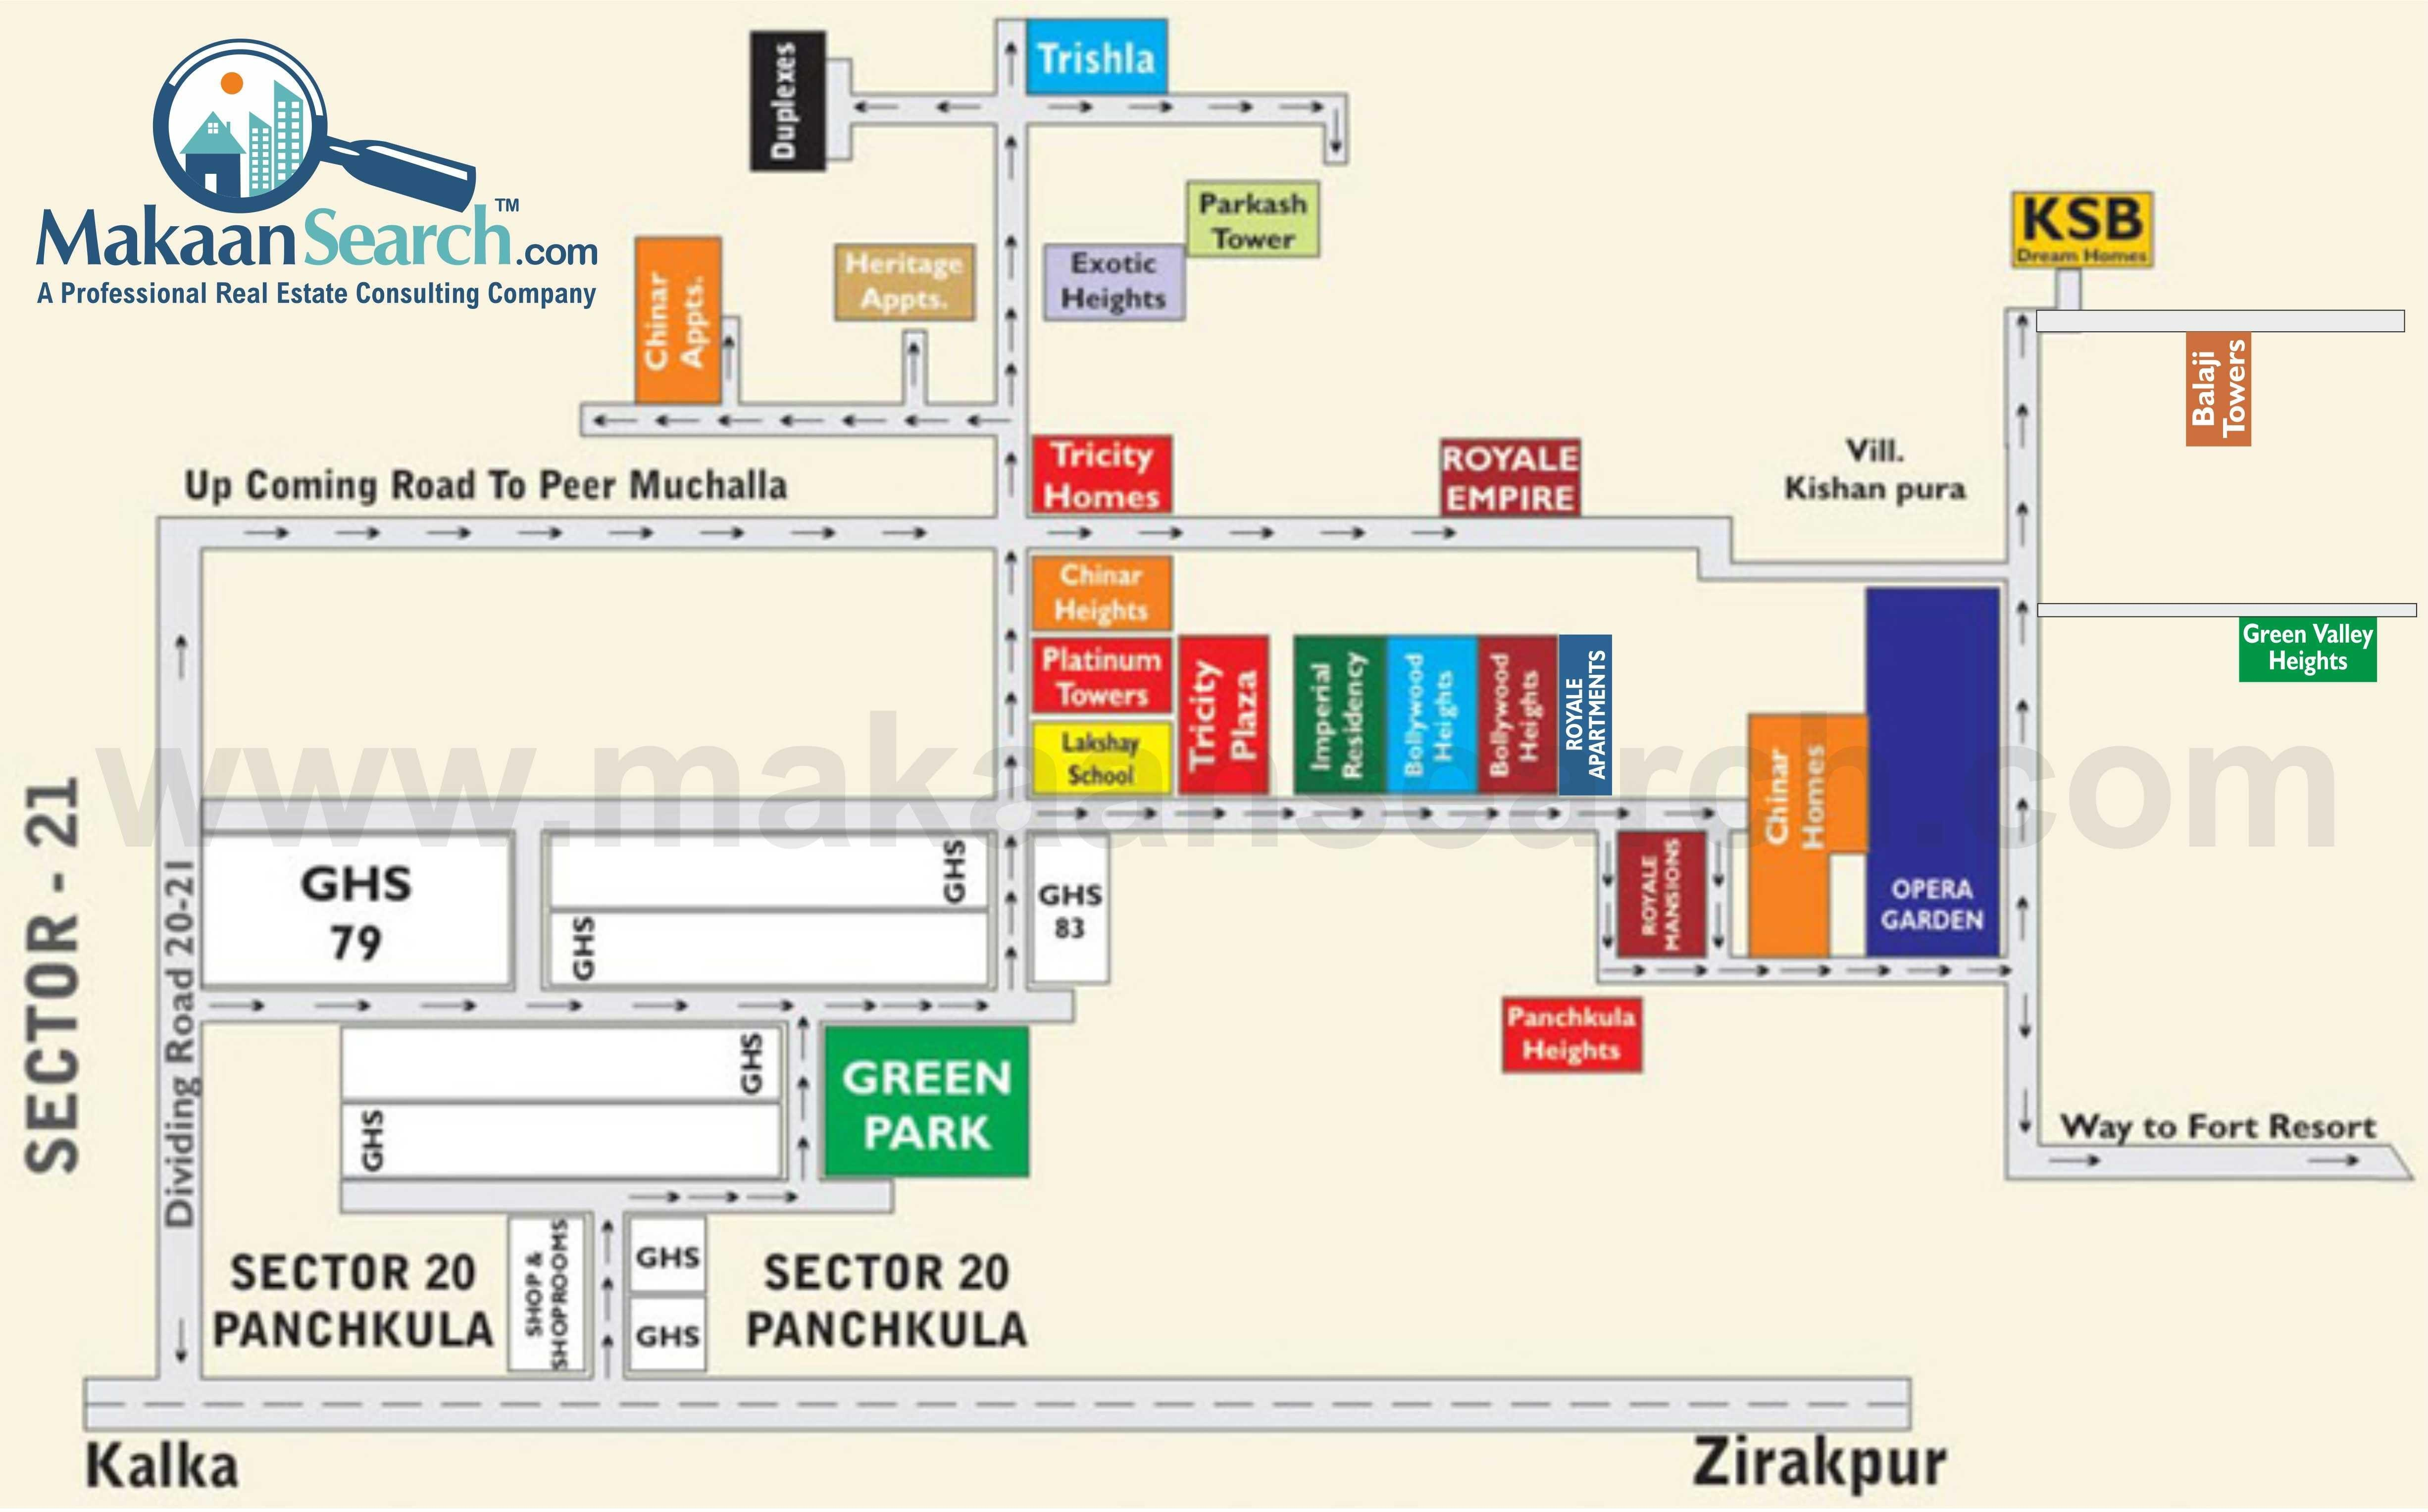 master plan of peer muchalla zirakpur green valley heights location map